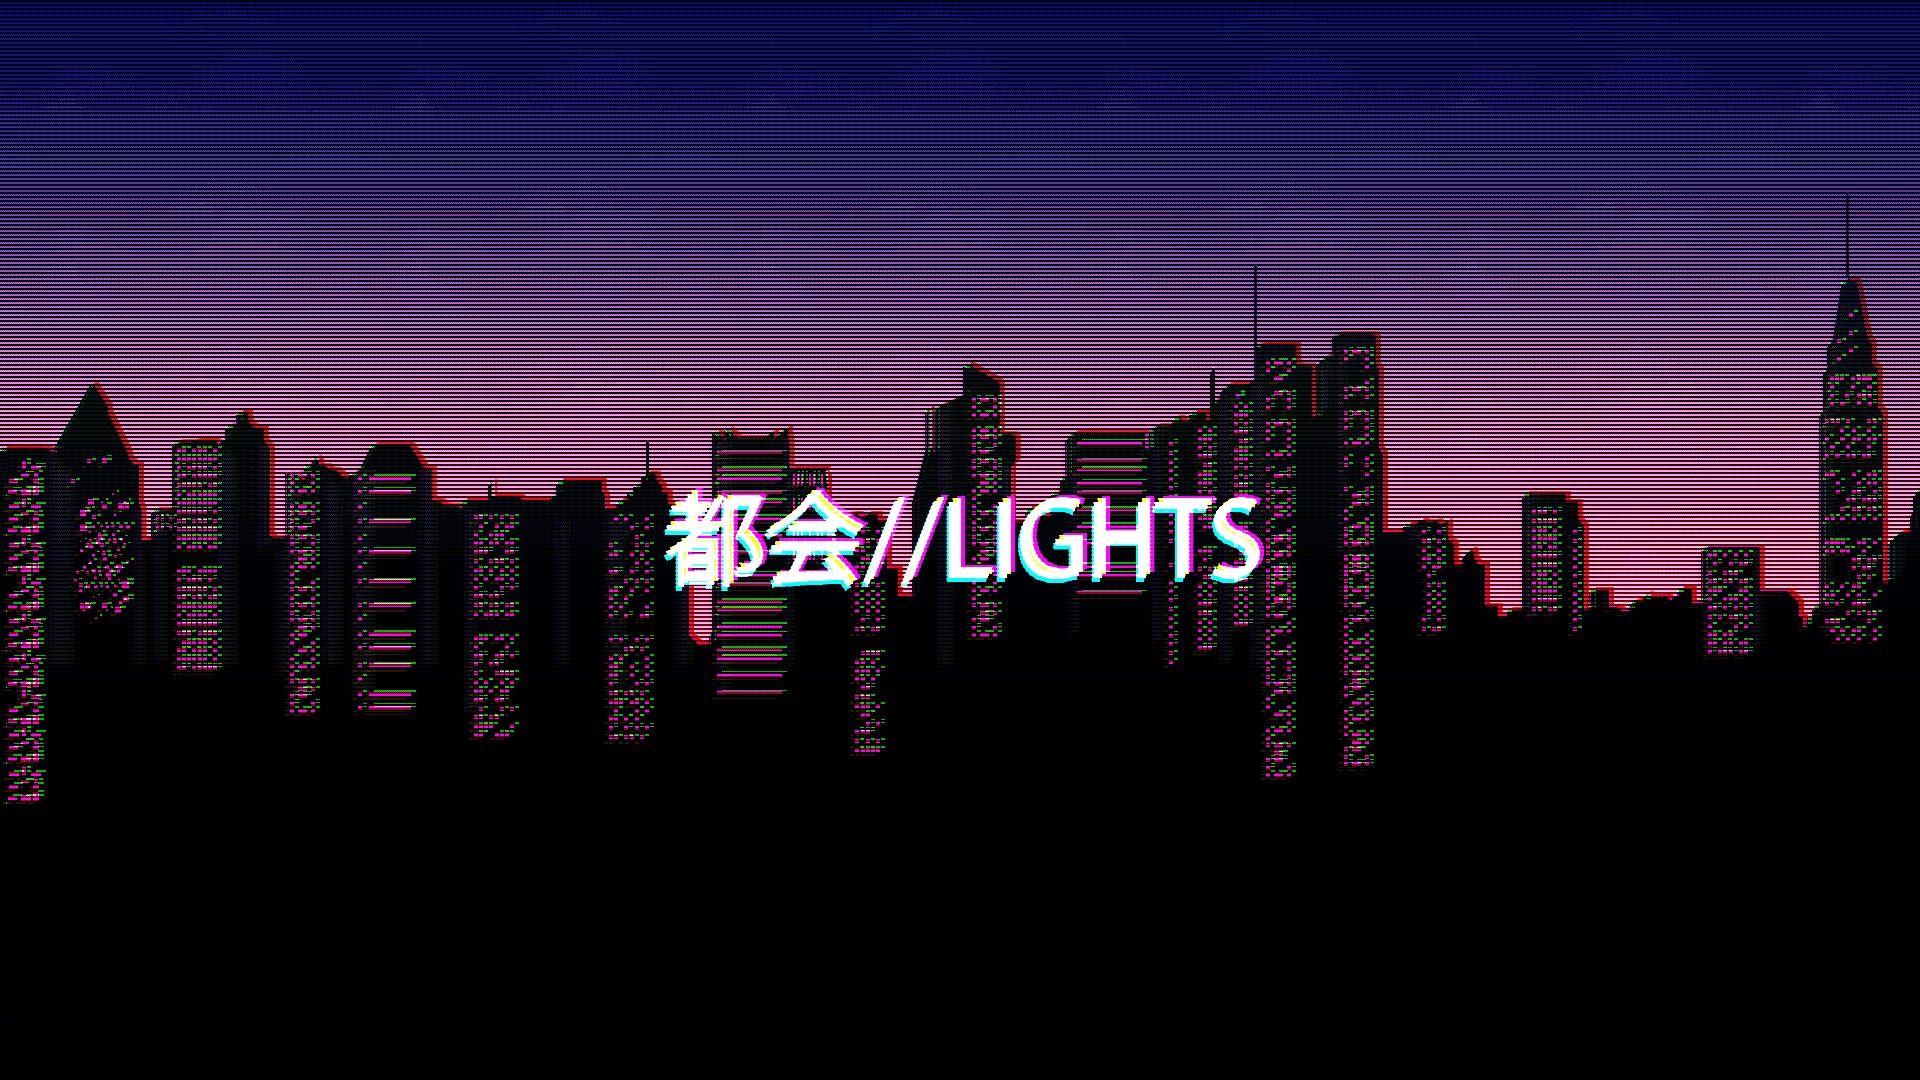 Vhs Anime Aesthetic Wallpapers Top Free Vhs Anime Aesthetic